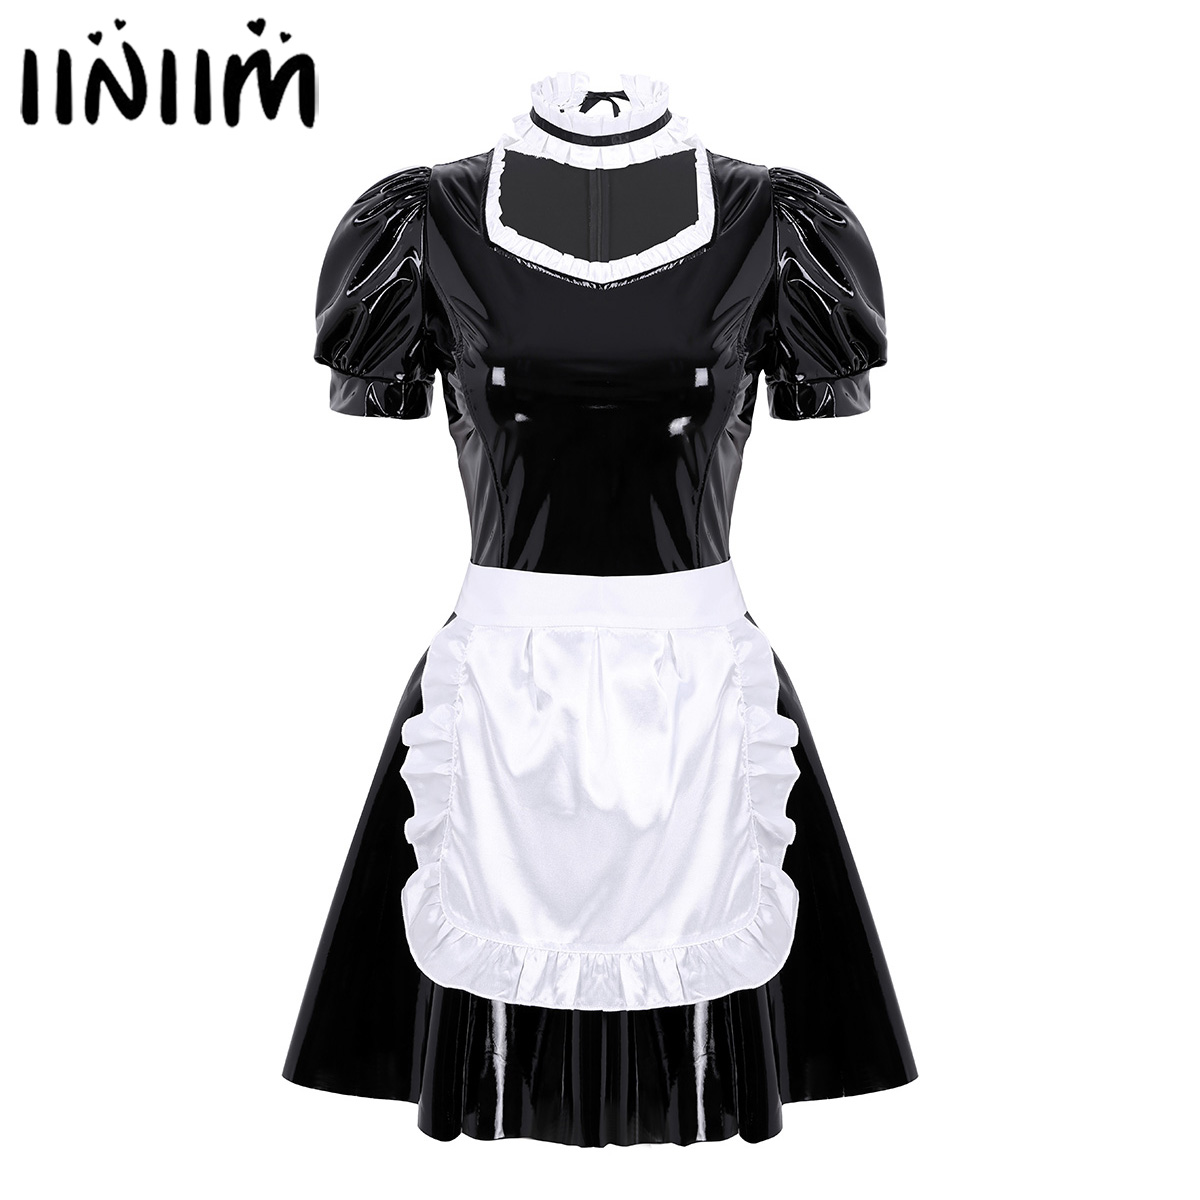 Women Adults French Maid Cosplay Costume Sexy Female Clubwear Puff Sleeve A-line Patent Leather Dress With Apron And Headband